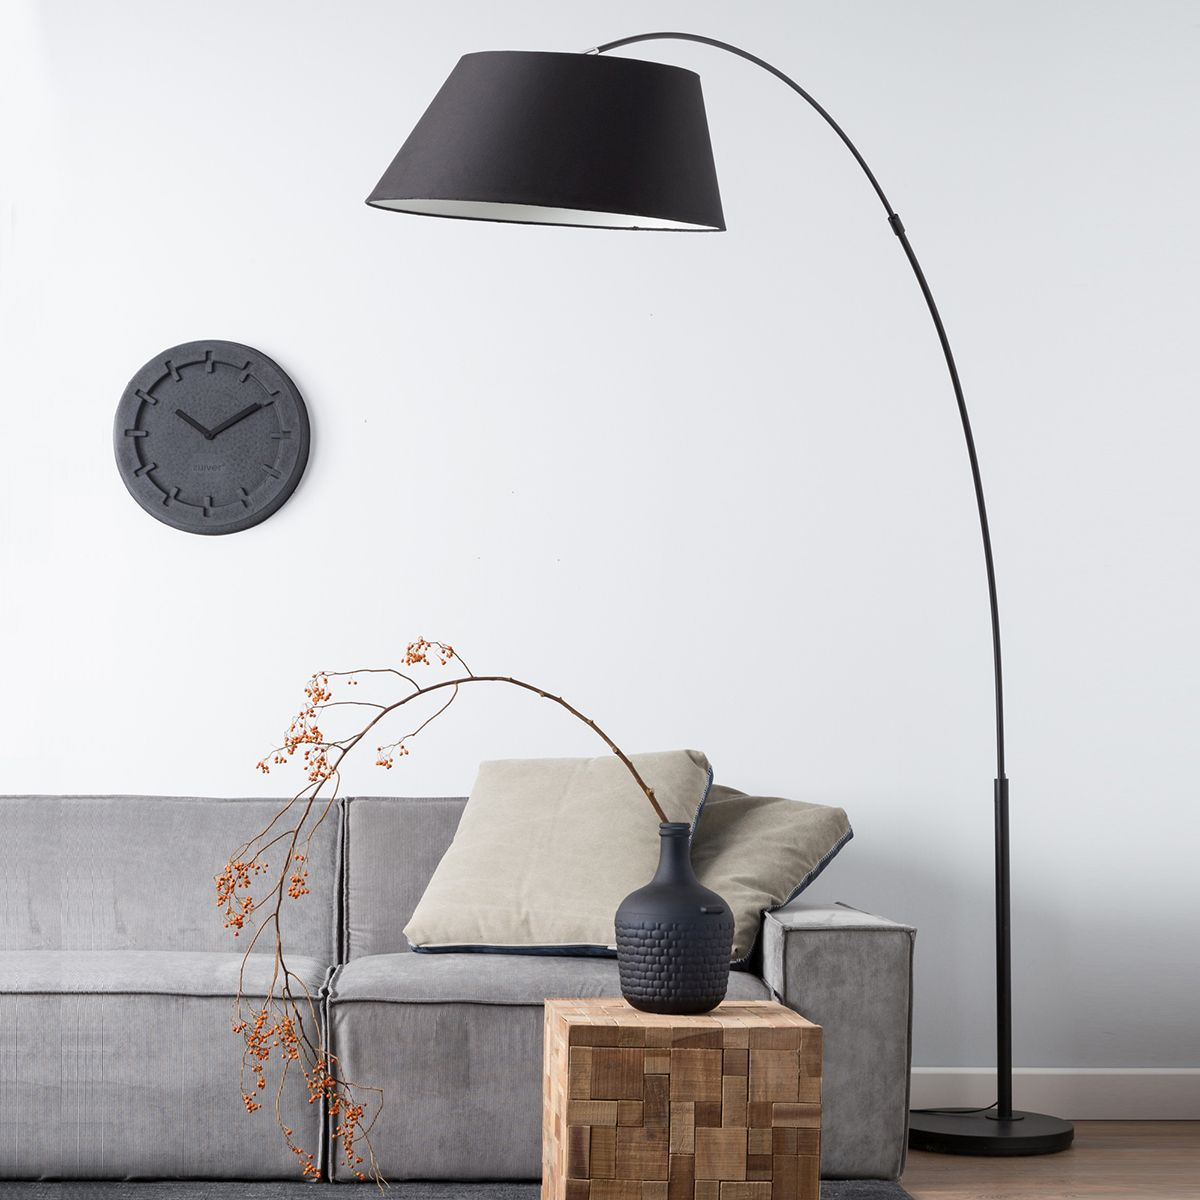 Stylish Lamps The Many Stylish Forms Of The Modern Arc Floor Lamp